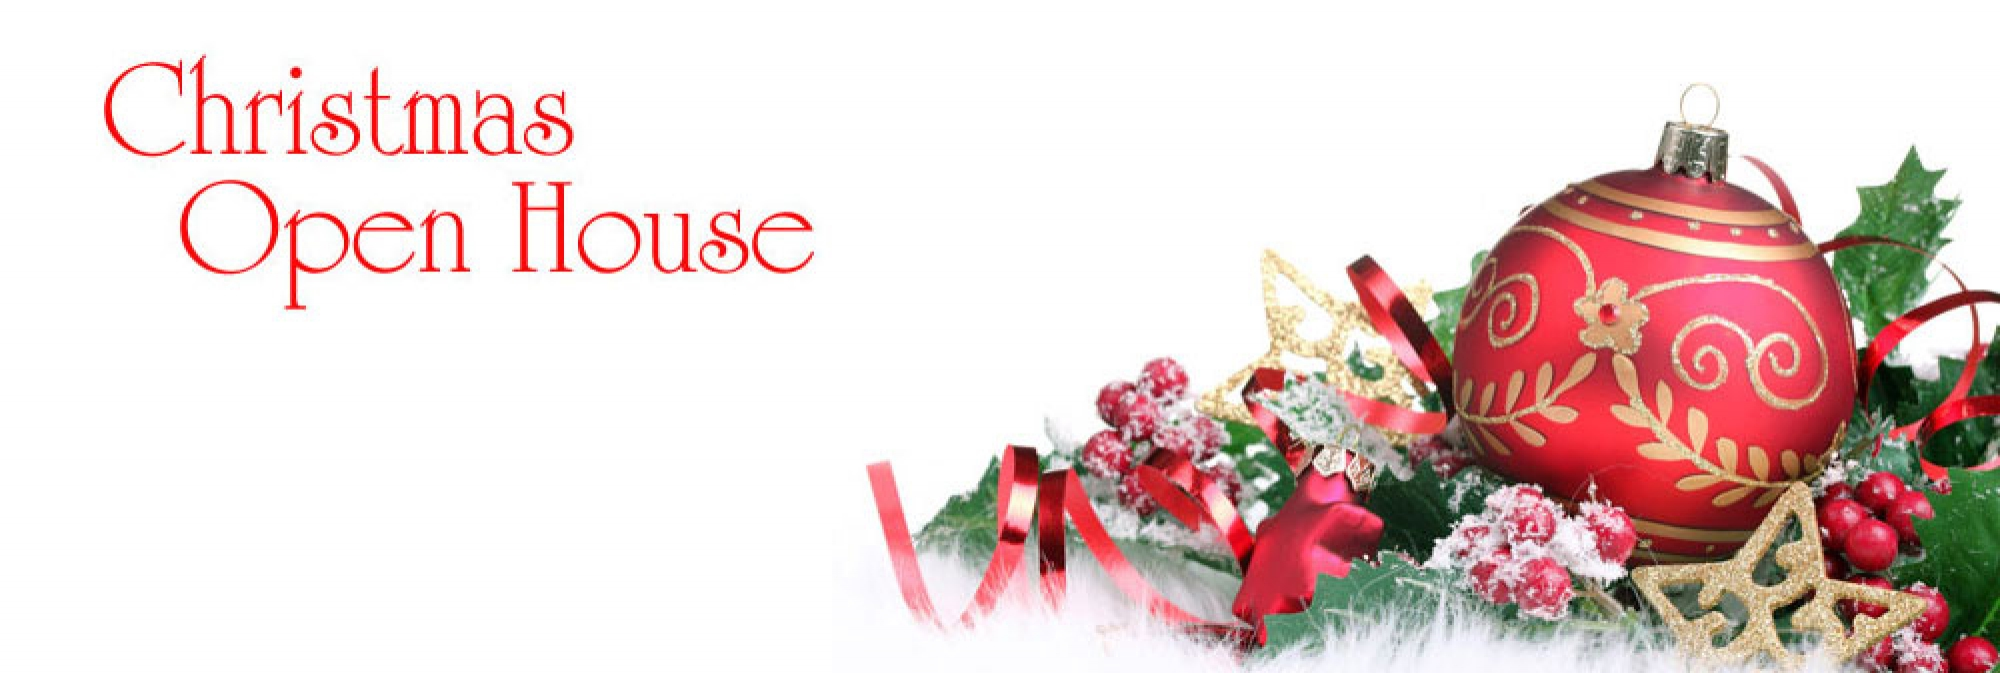 Christmas-Open-House-wide